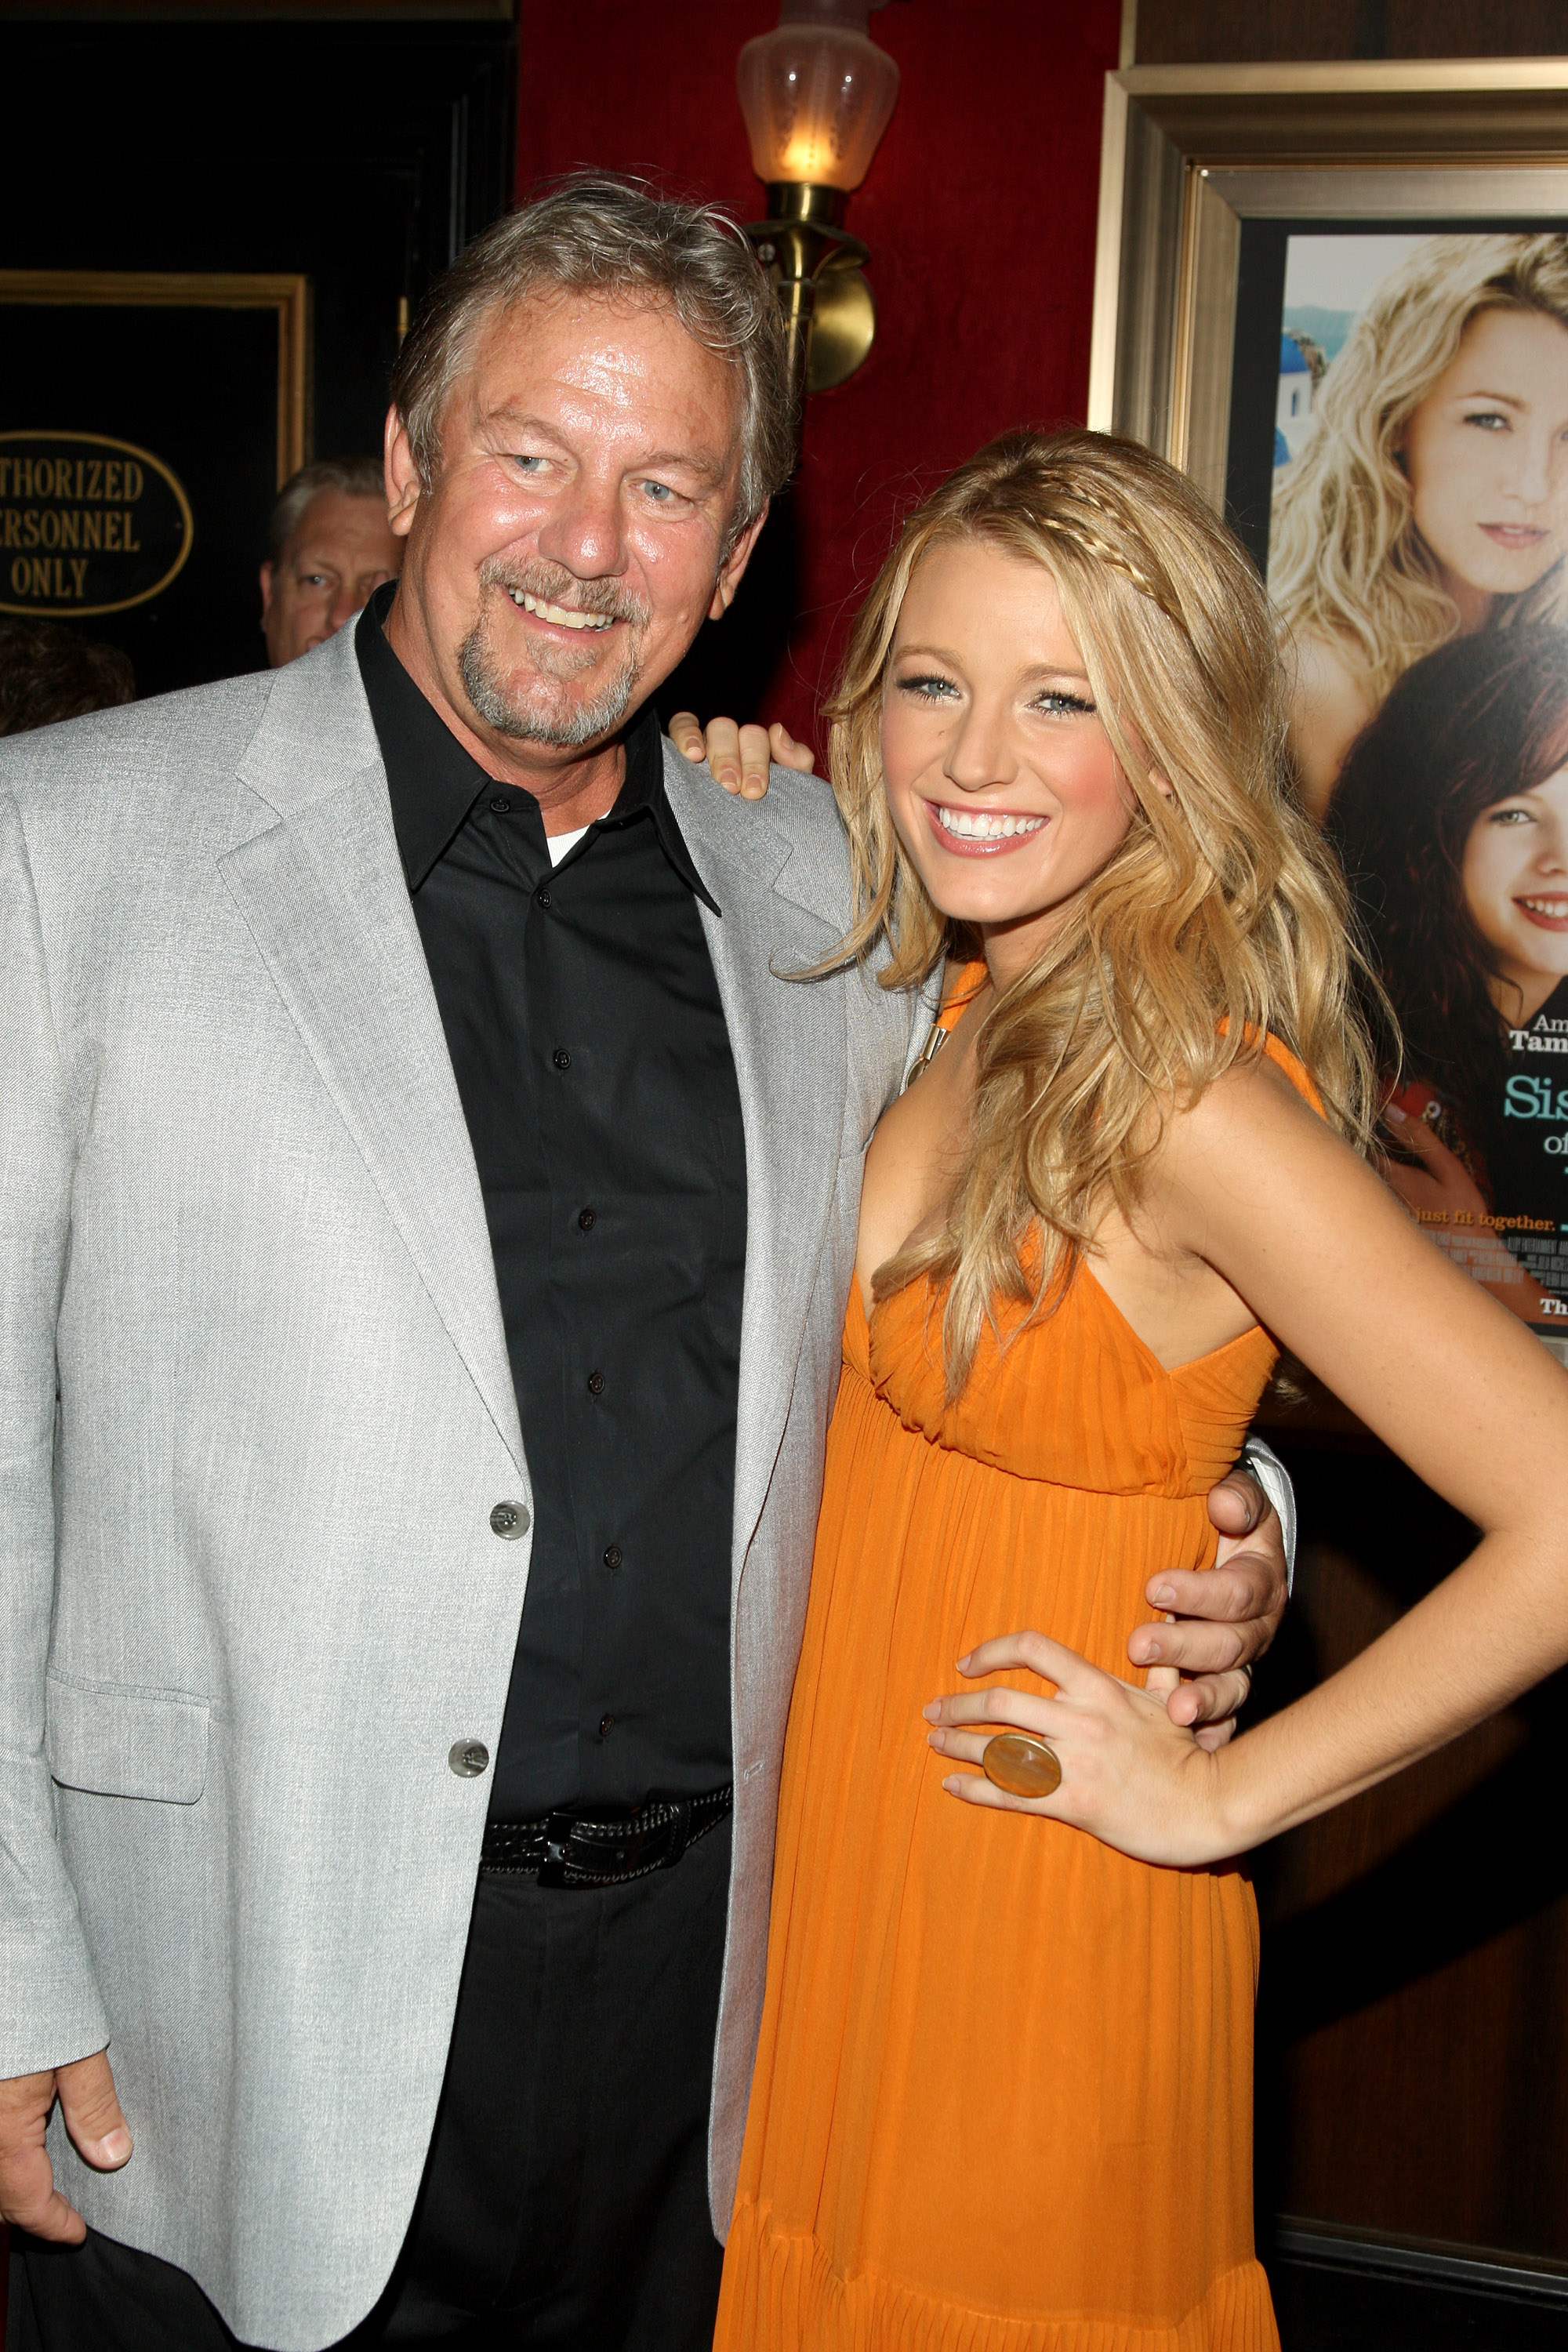 """Blake Lively and Ernie Lively attends the world premiere of  """"The Sisterhood Of The Traveling Pants 2"""" presented by Warner Bros. Pictures at the Ziegfeld Theatre on July 28, 2008 in New York City."""